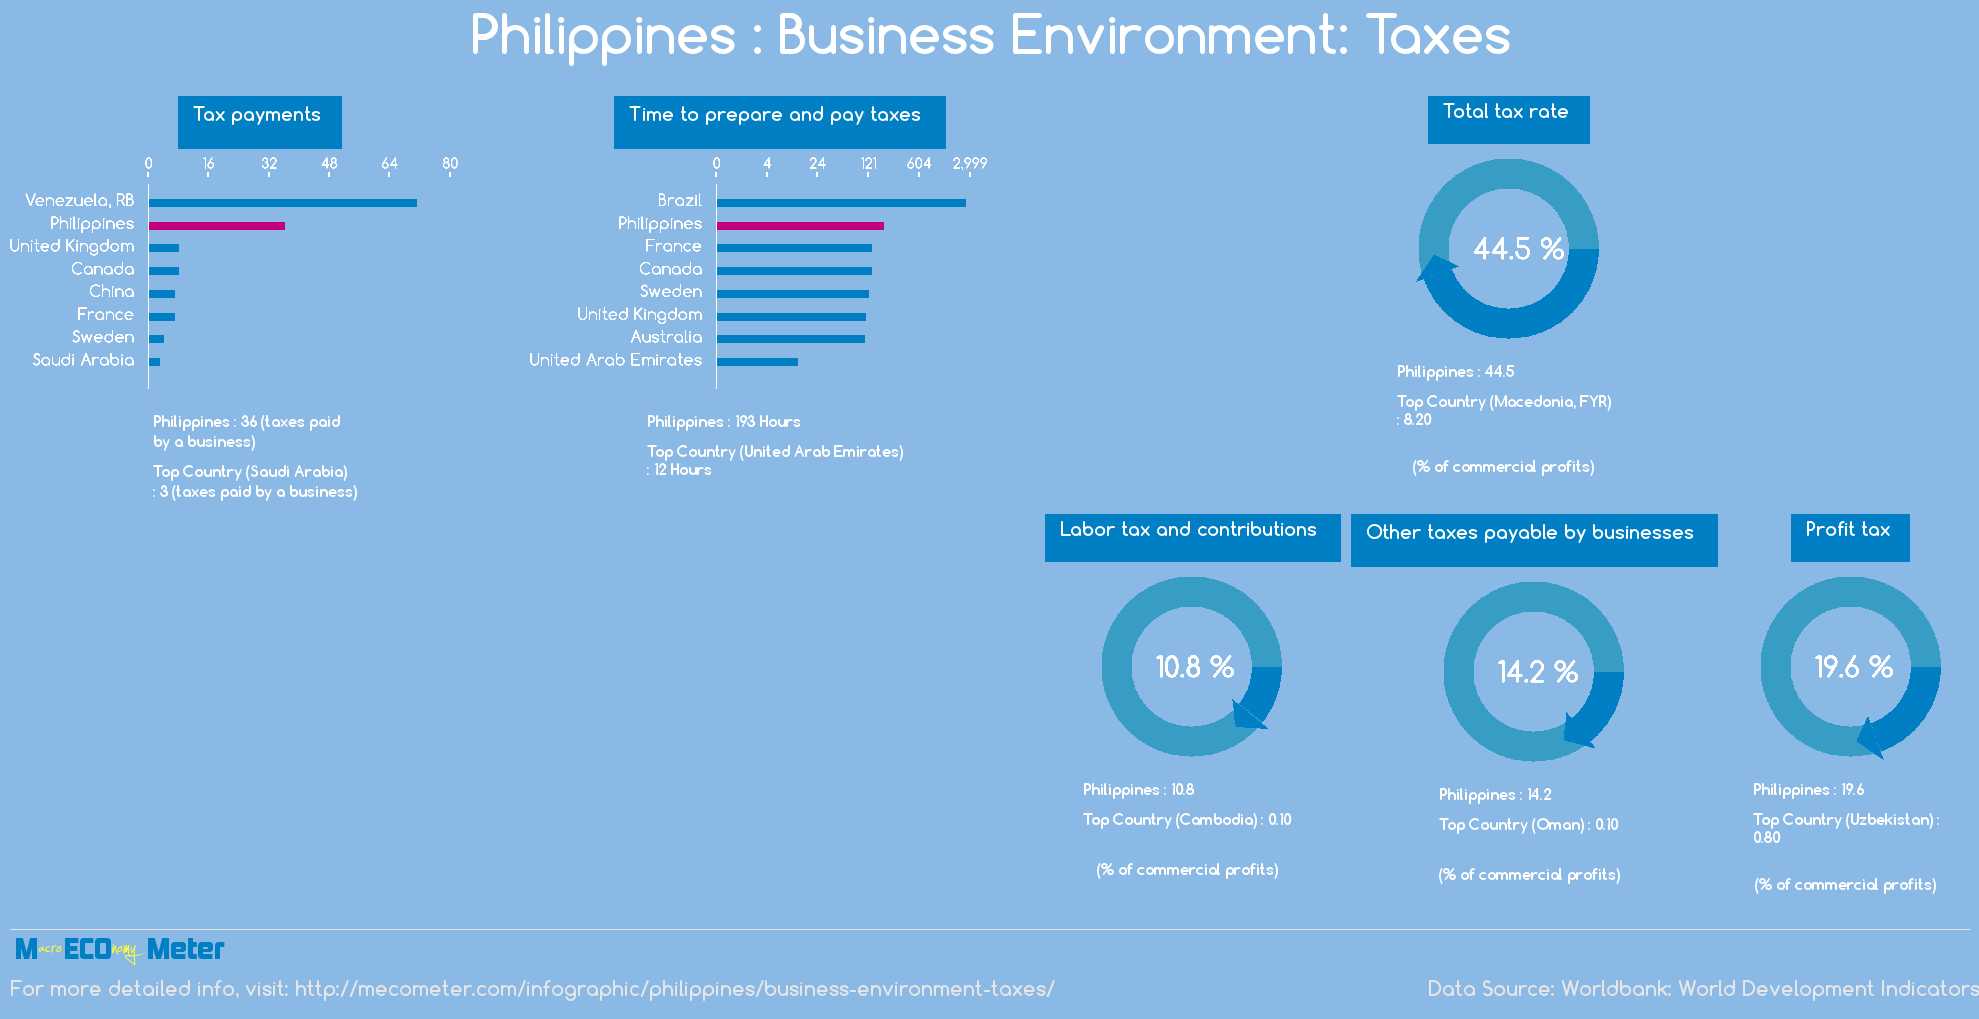 Philippines : Business Environment: Taxes